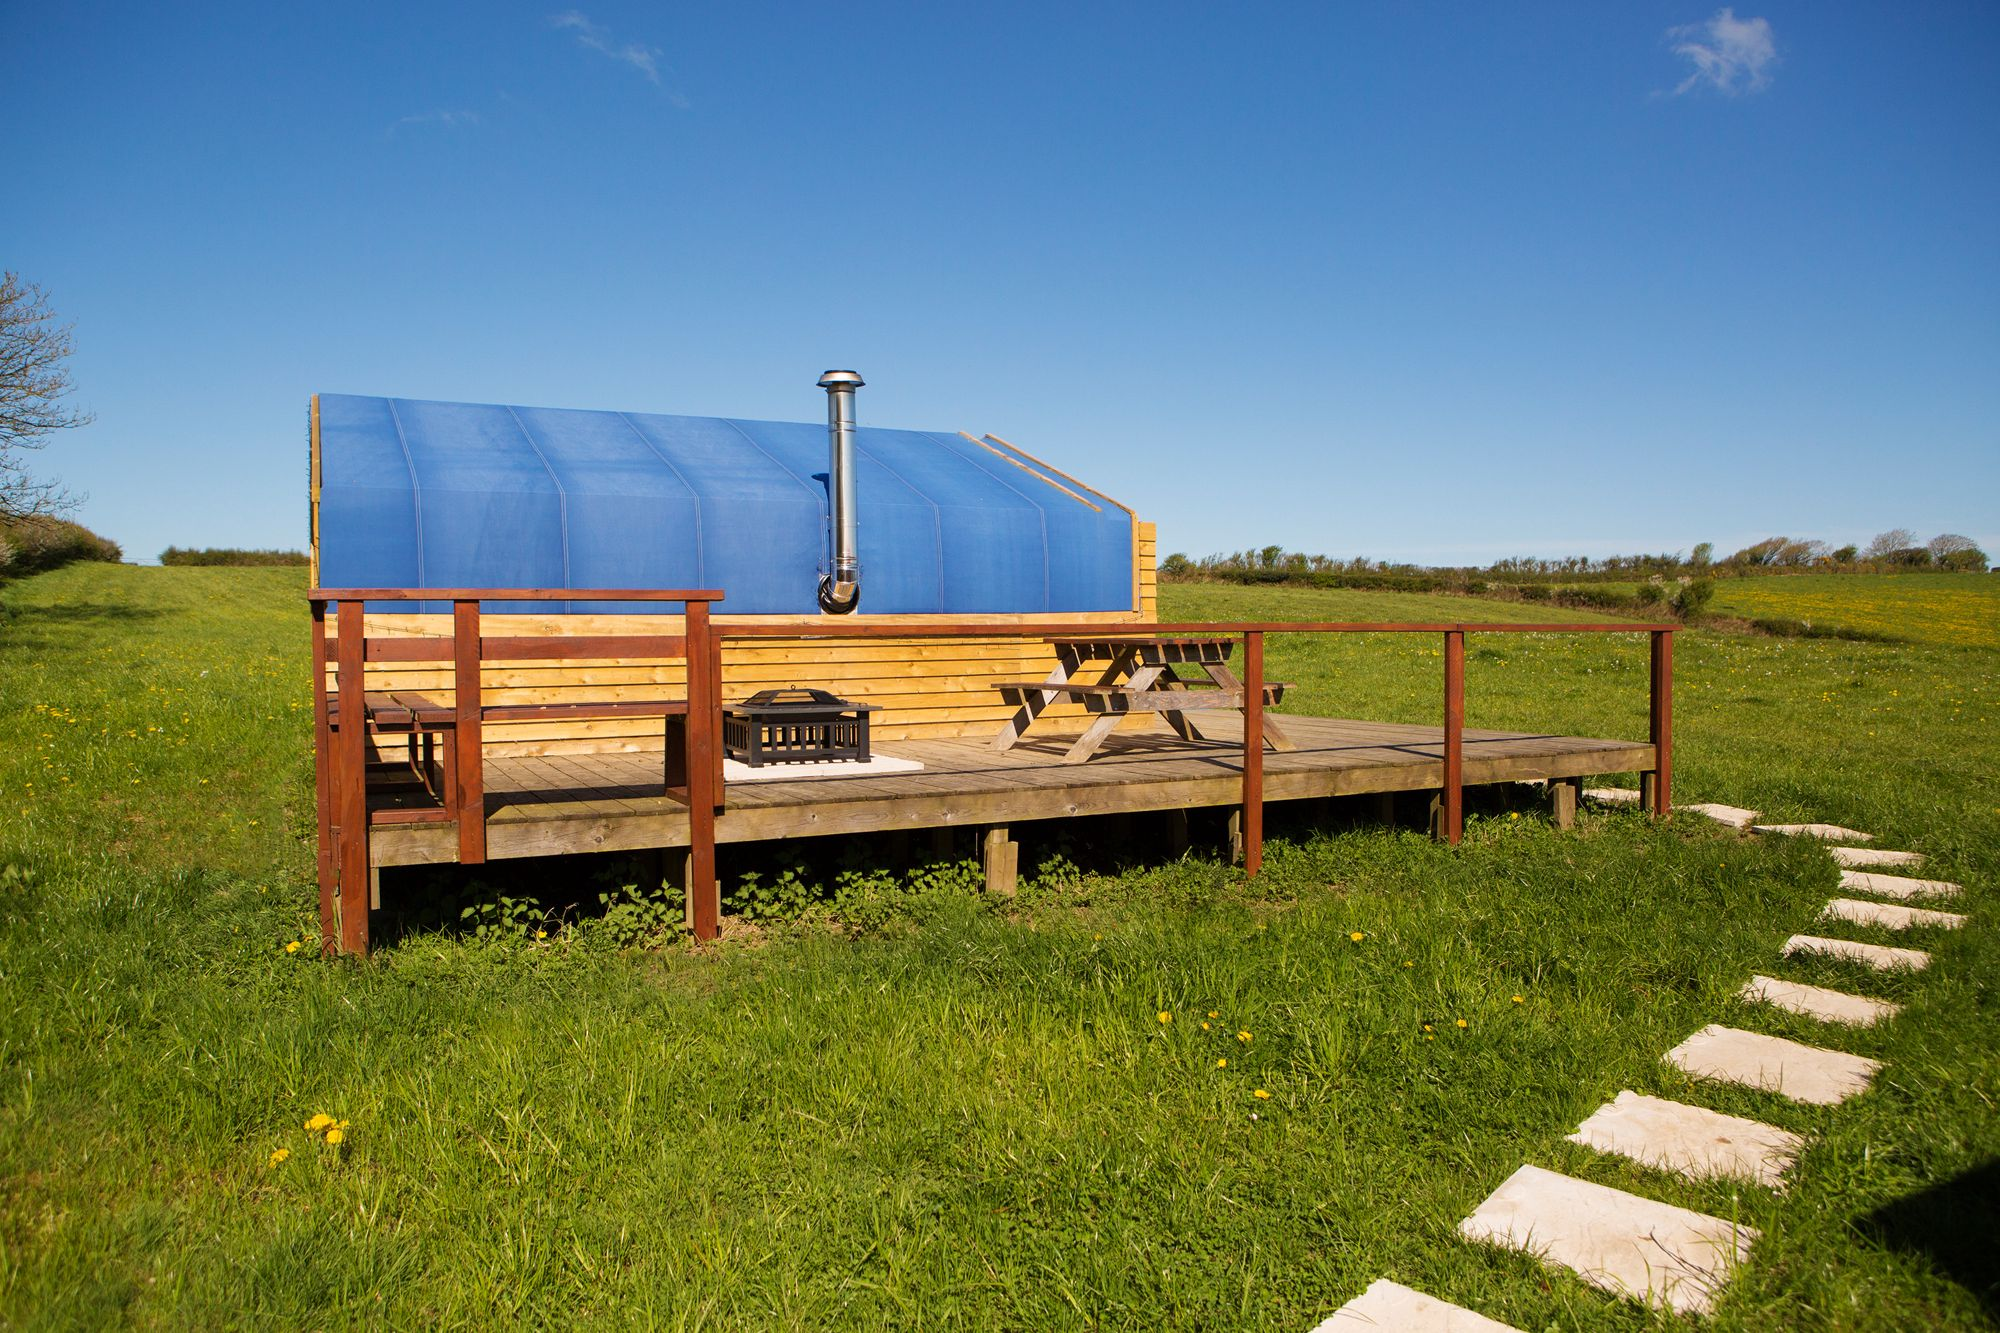 Wooden glamping cabins with a cosy interior that sleeps up to five people, set on an organic farm in Carmarthenshire, Wales.